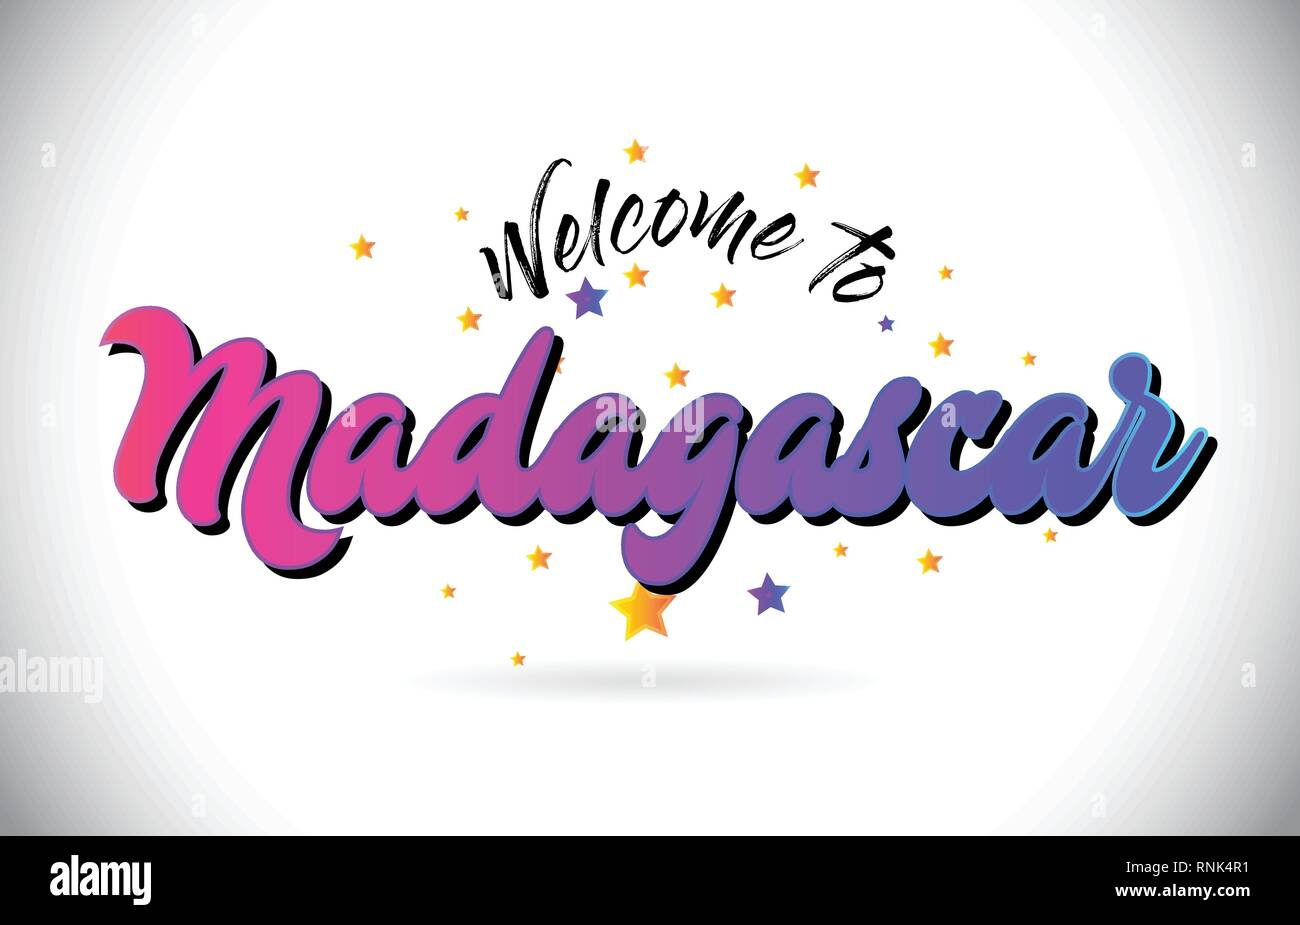 Madagascar Welcome To Word Text with Purple Pink Handwritten